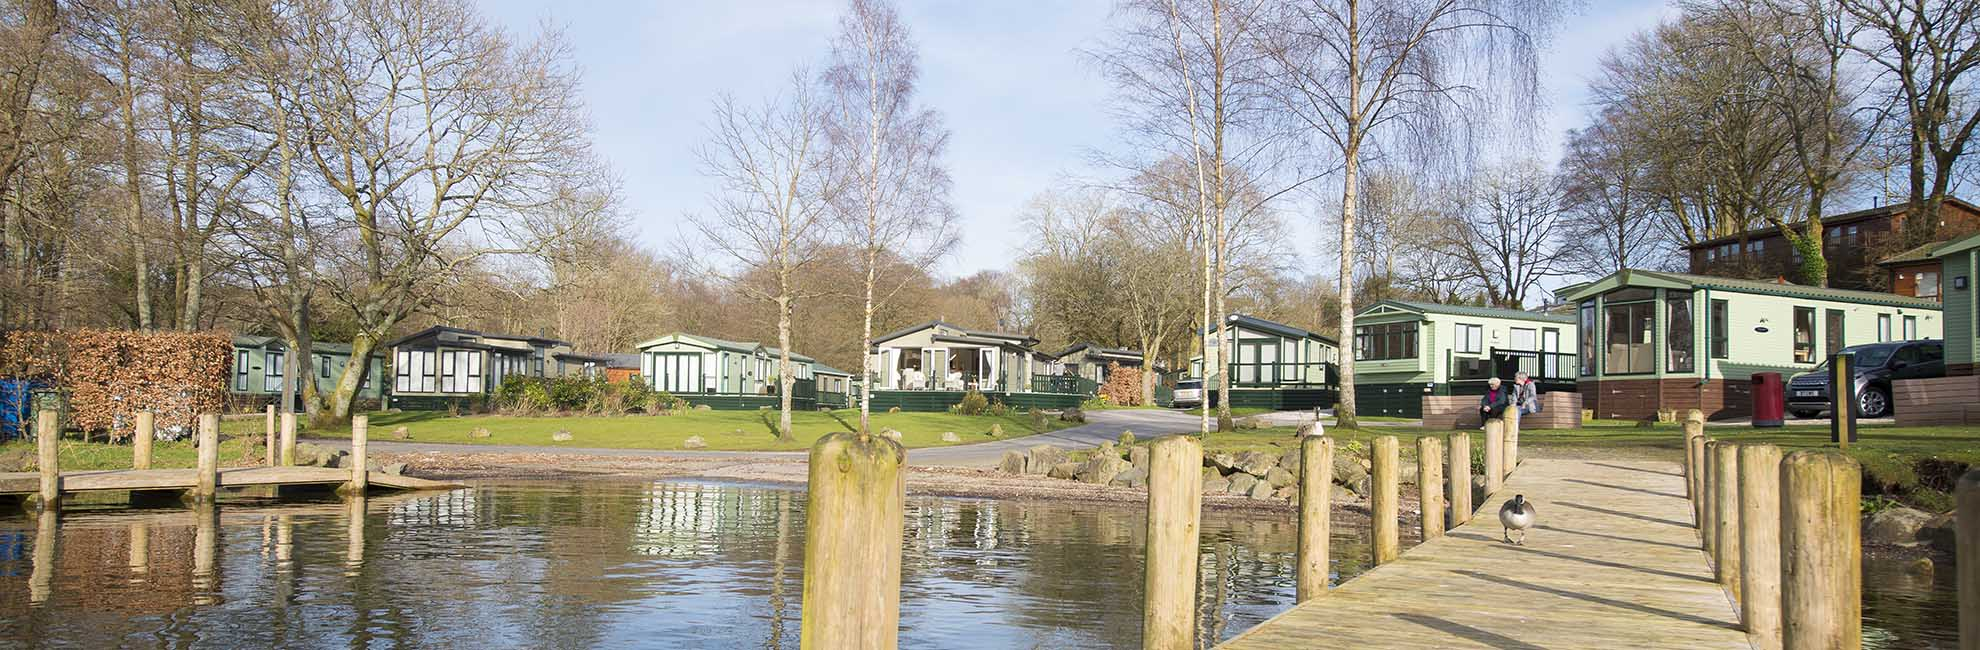 Lodges by the lake at a Lake District holiday park